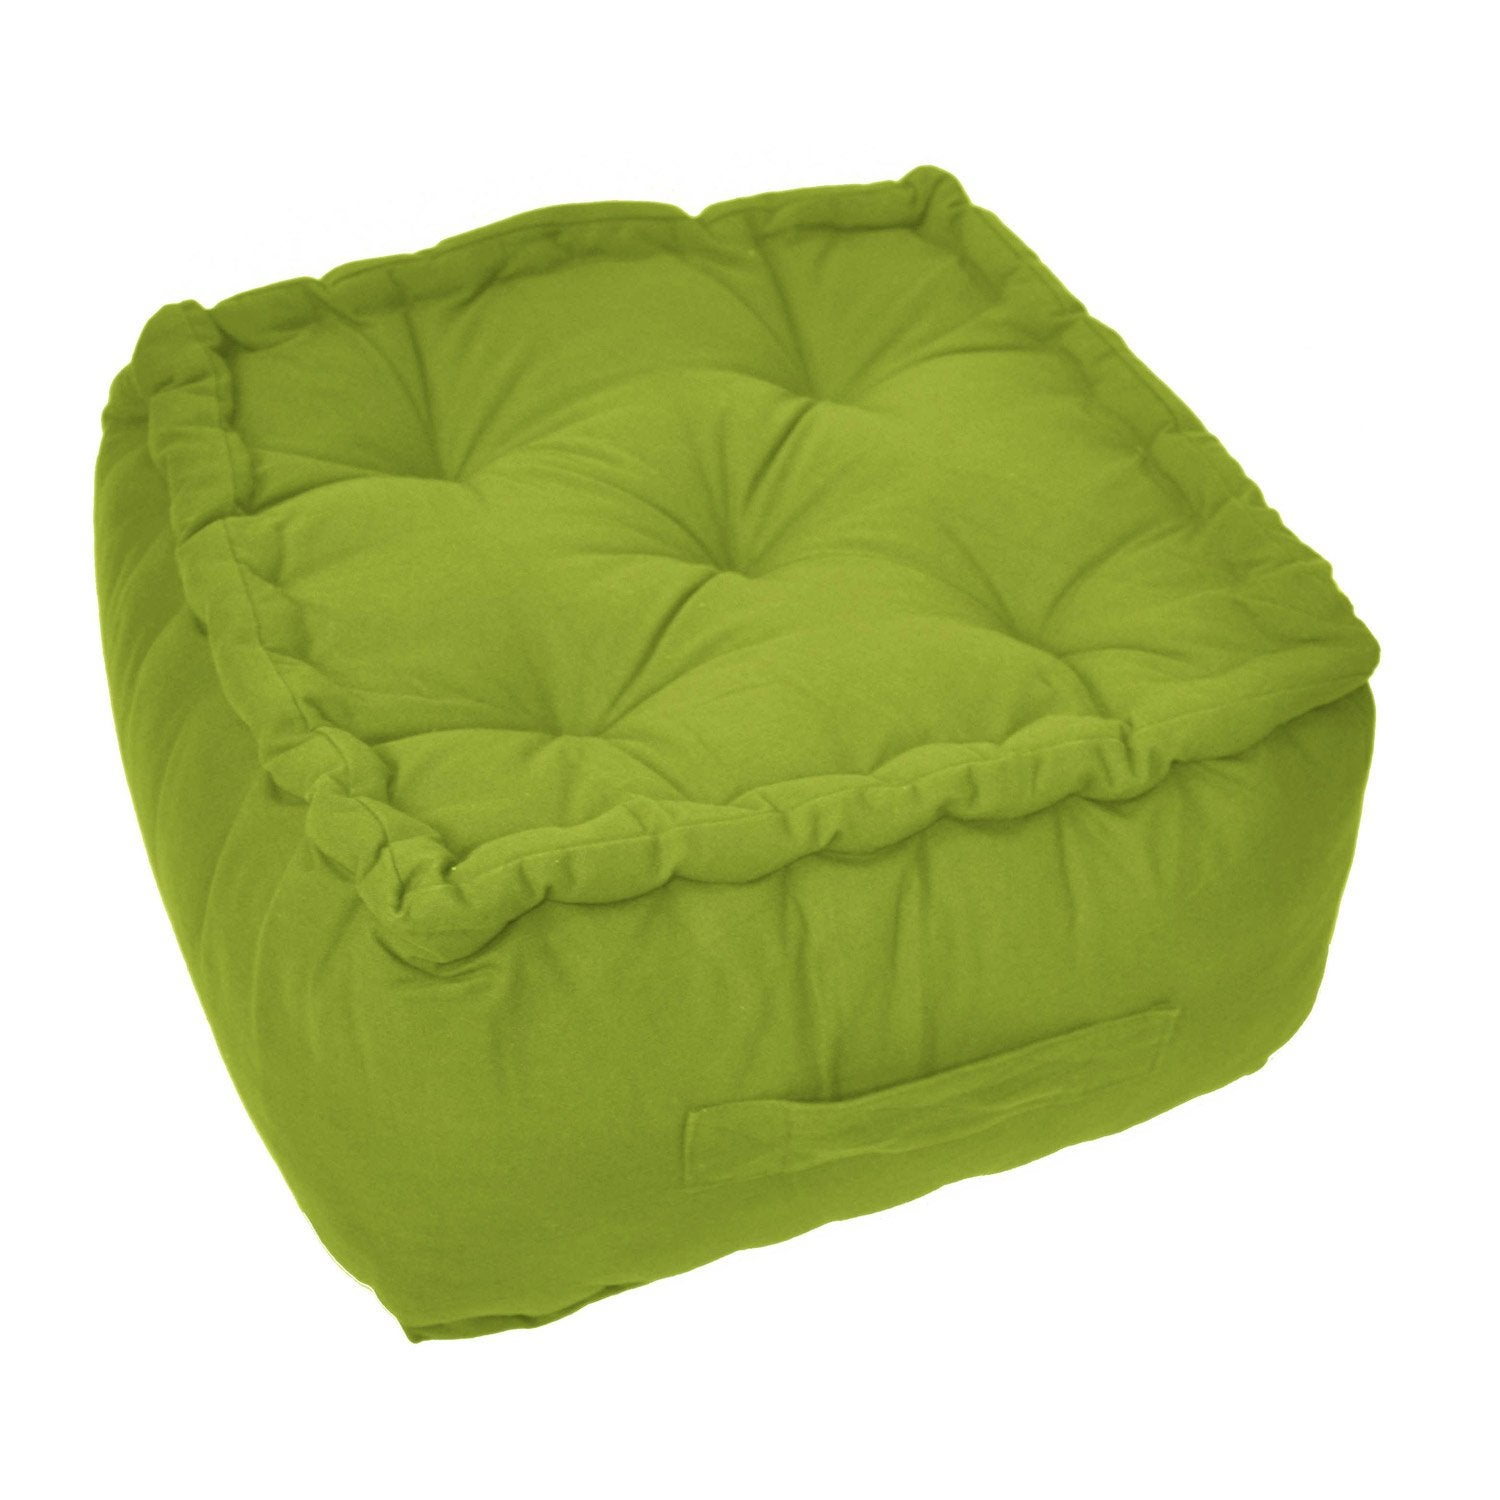 pouf bachette vert pistache n 3 40 x 40 cm leroy merlin. Black Bedroom Furniture Sets. Home Design Ideas